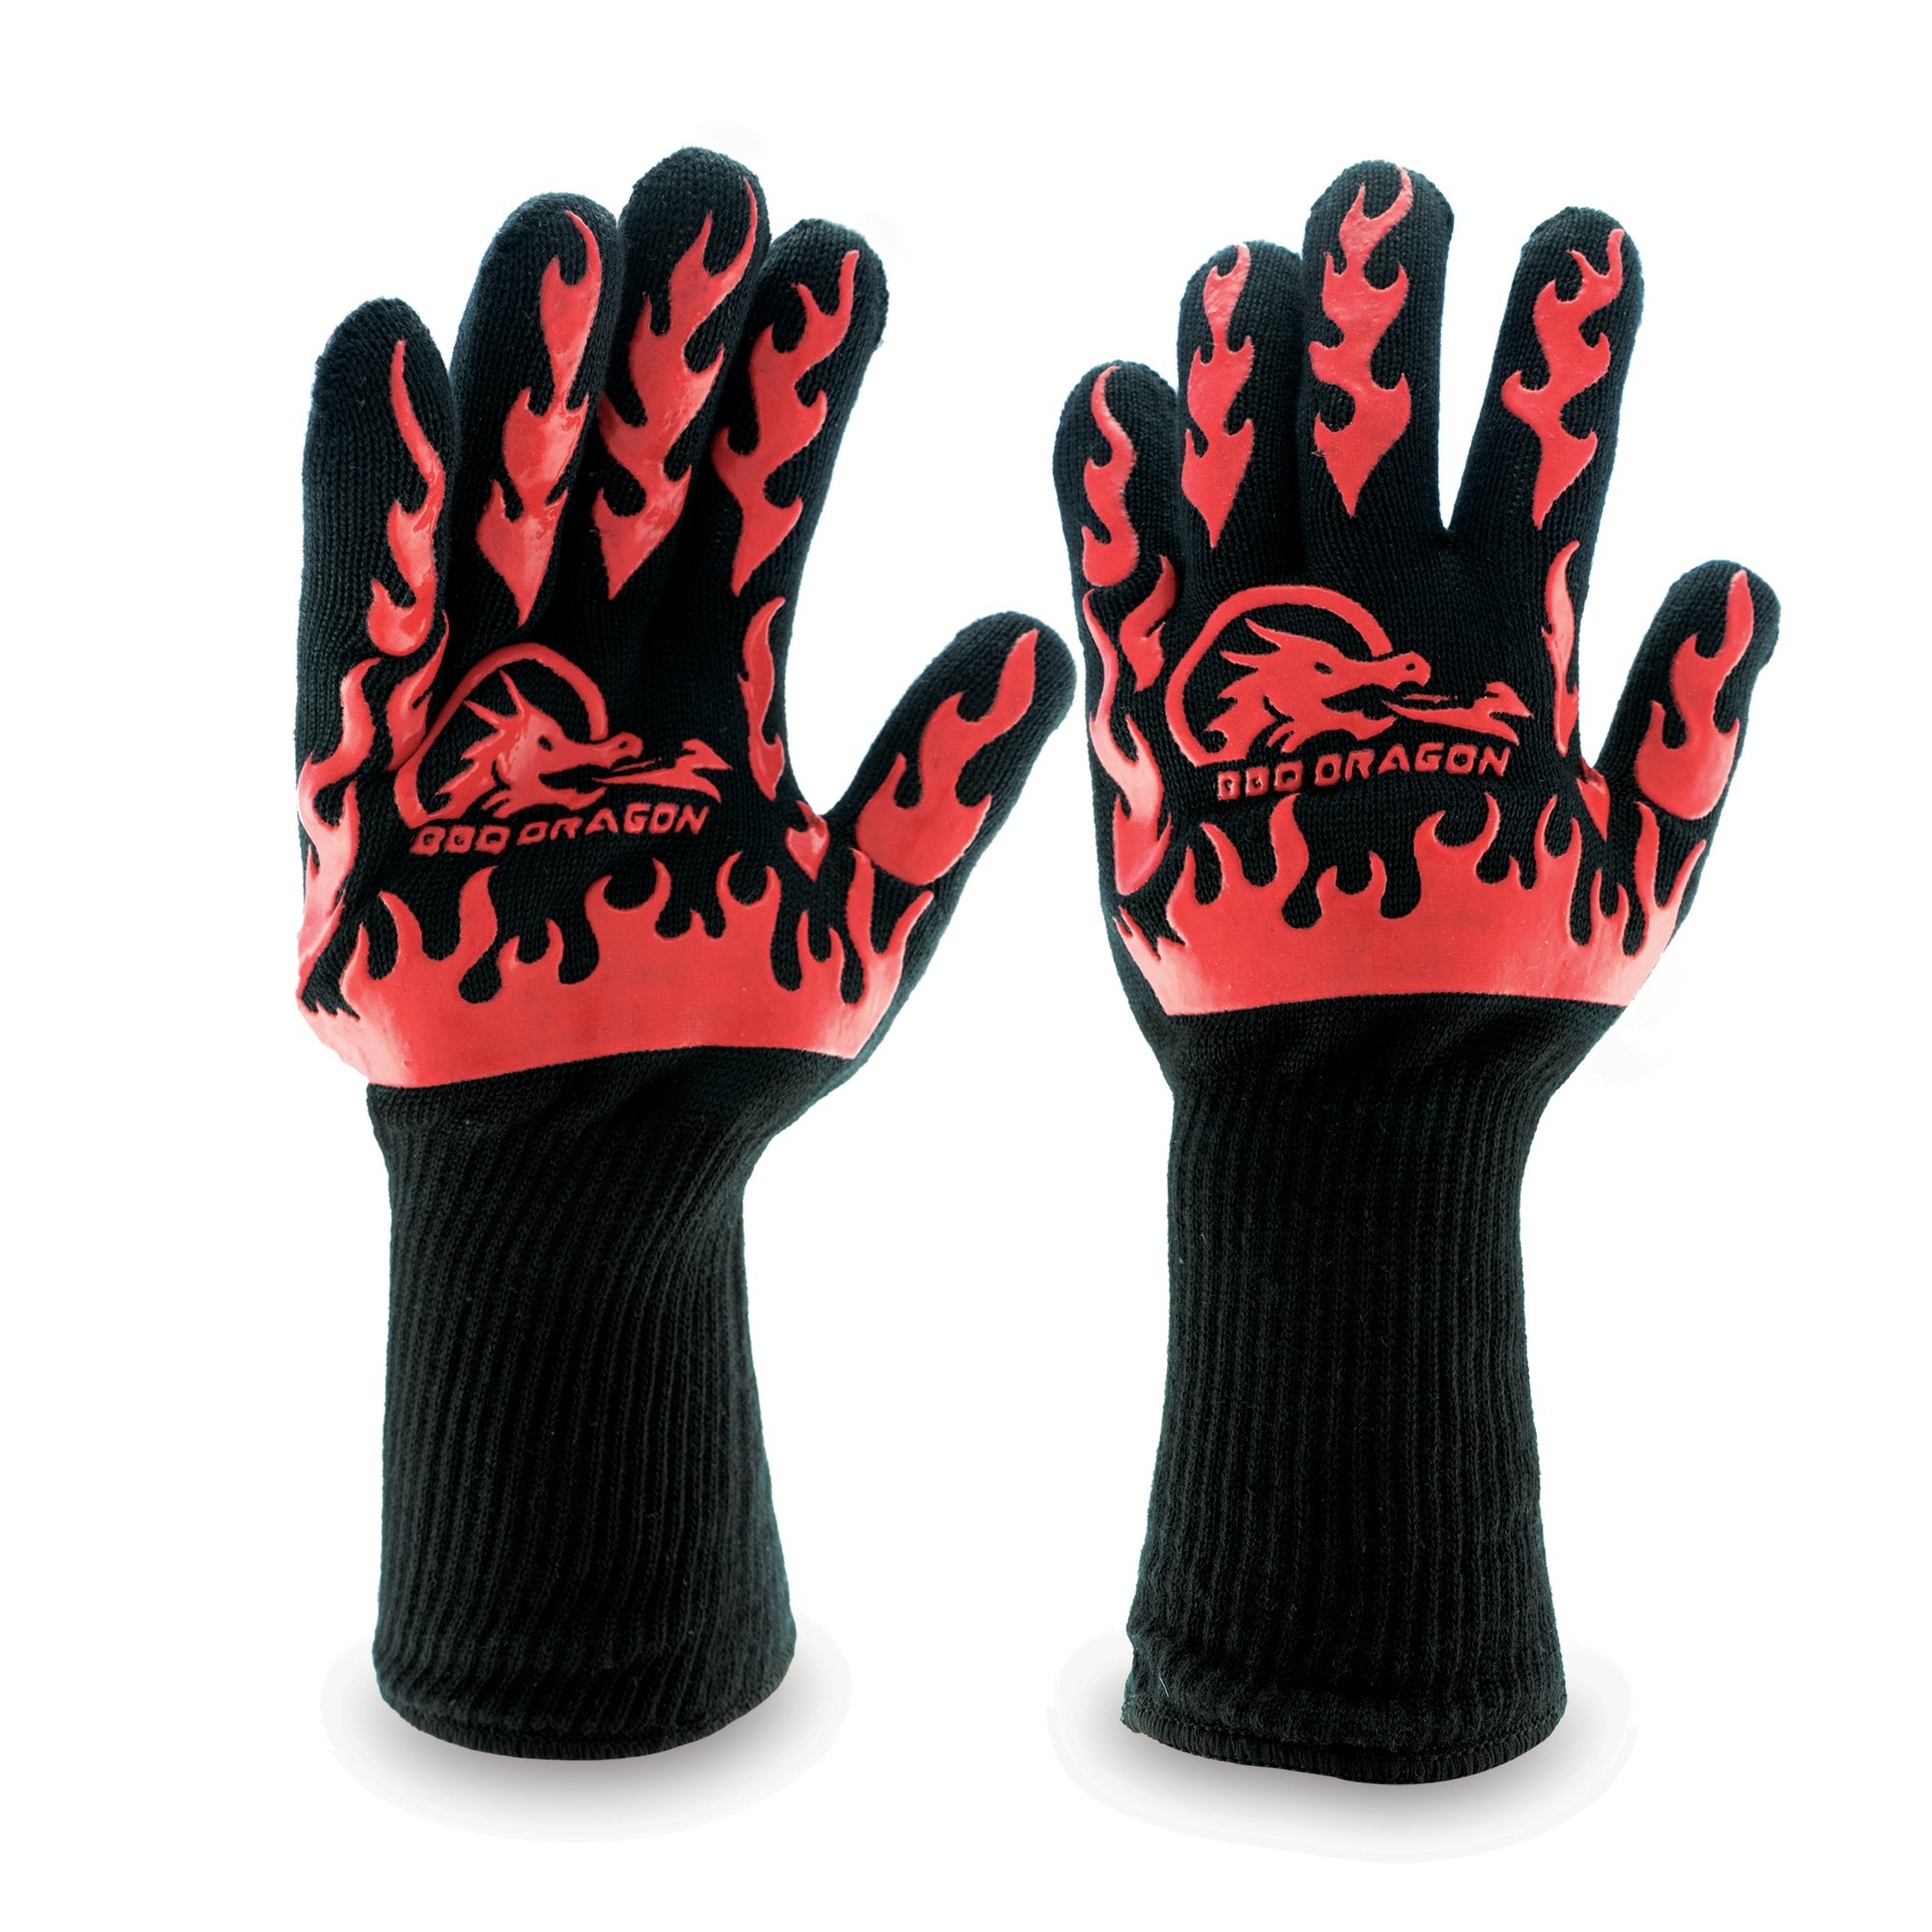 Extreme Heat Resistant Gloves, BBQ Gloves, Hot Oven Mitts, Charcoal Grill, Smoking, Barbecue Gloves for Grilling Meat Gloves, Insulated, Silicone Non-Slip Grips, U.S. Safety Tested - BBQ Dragon by BBQ Dragon